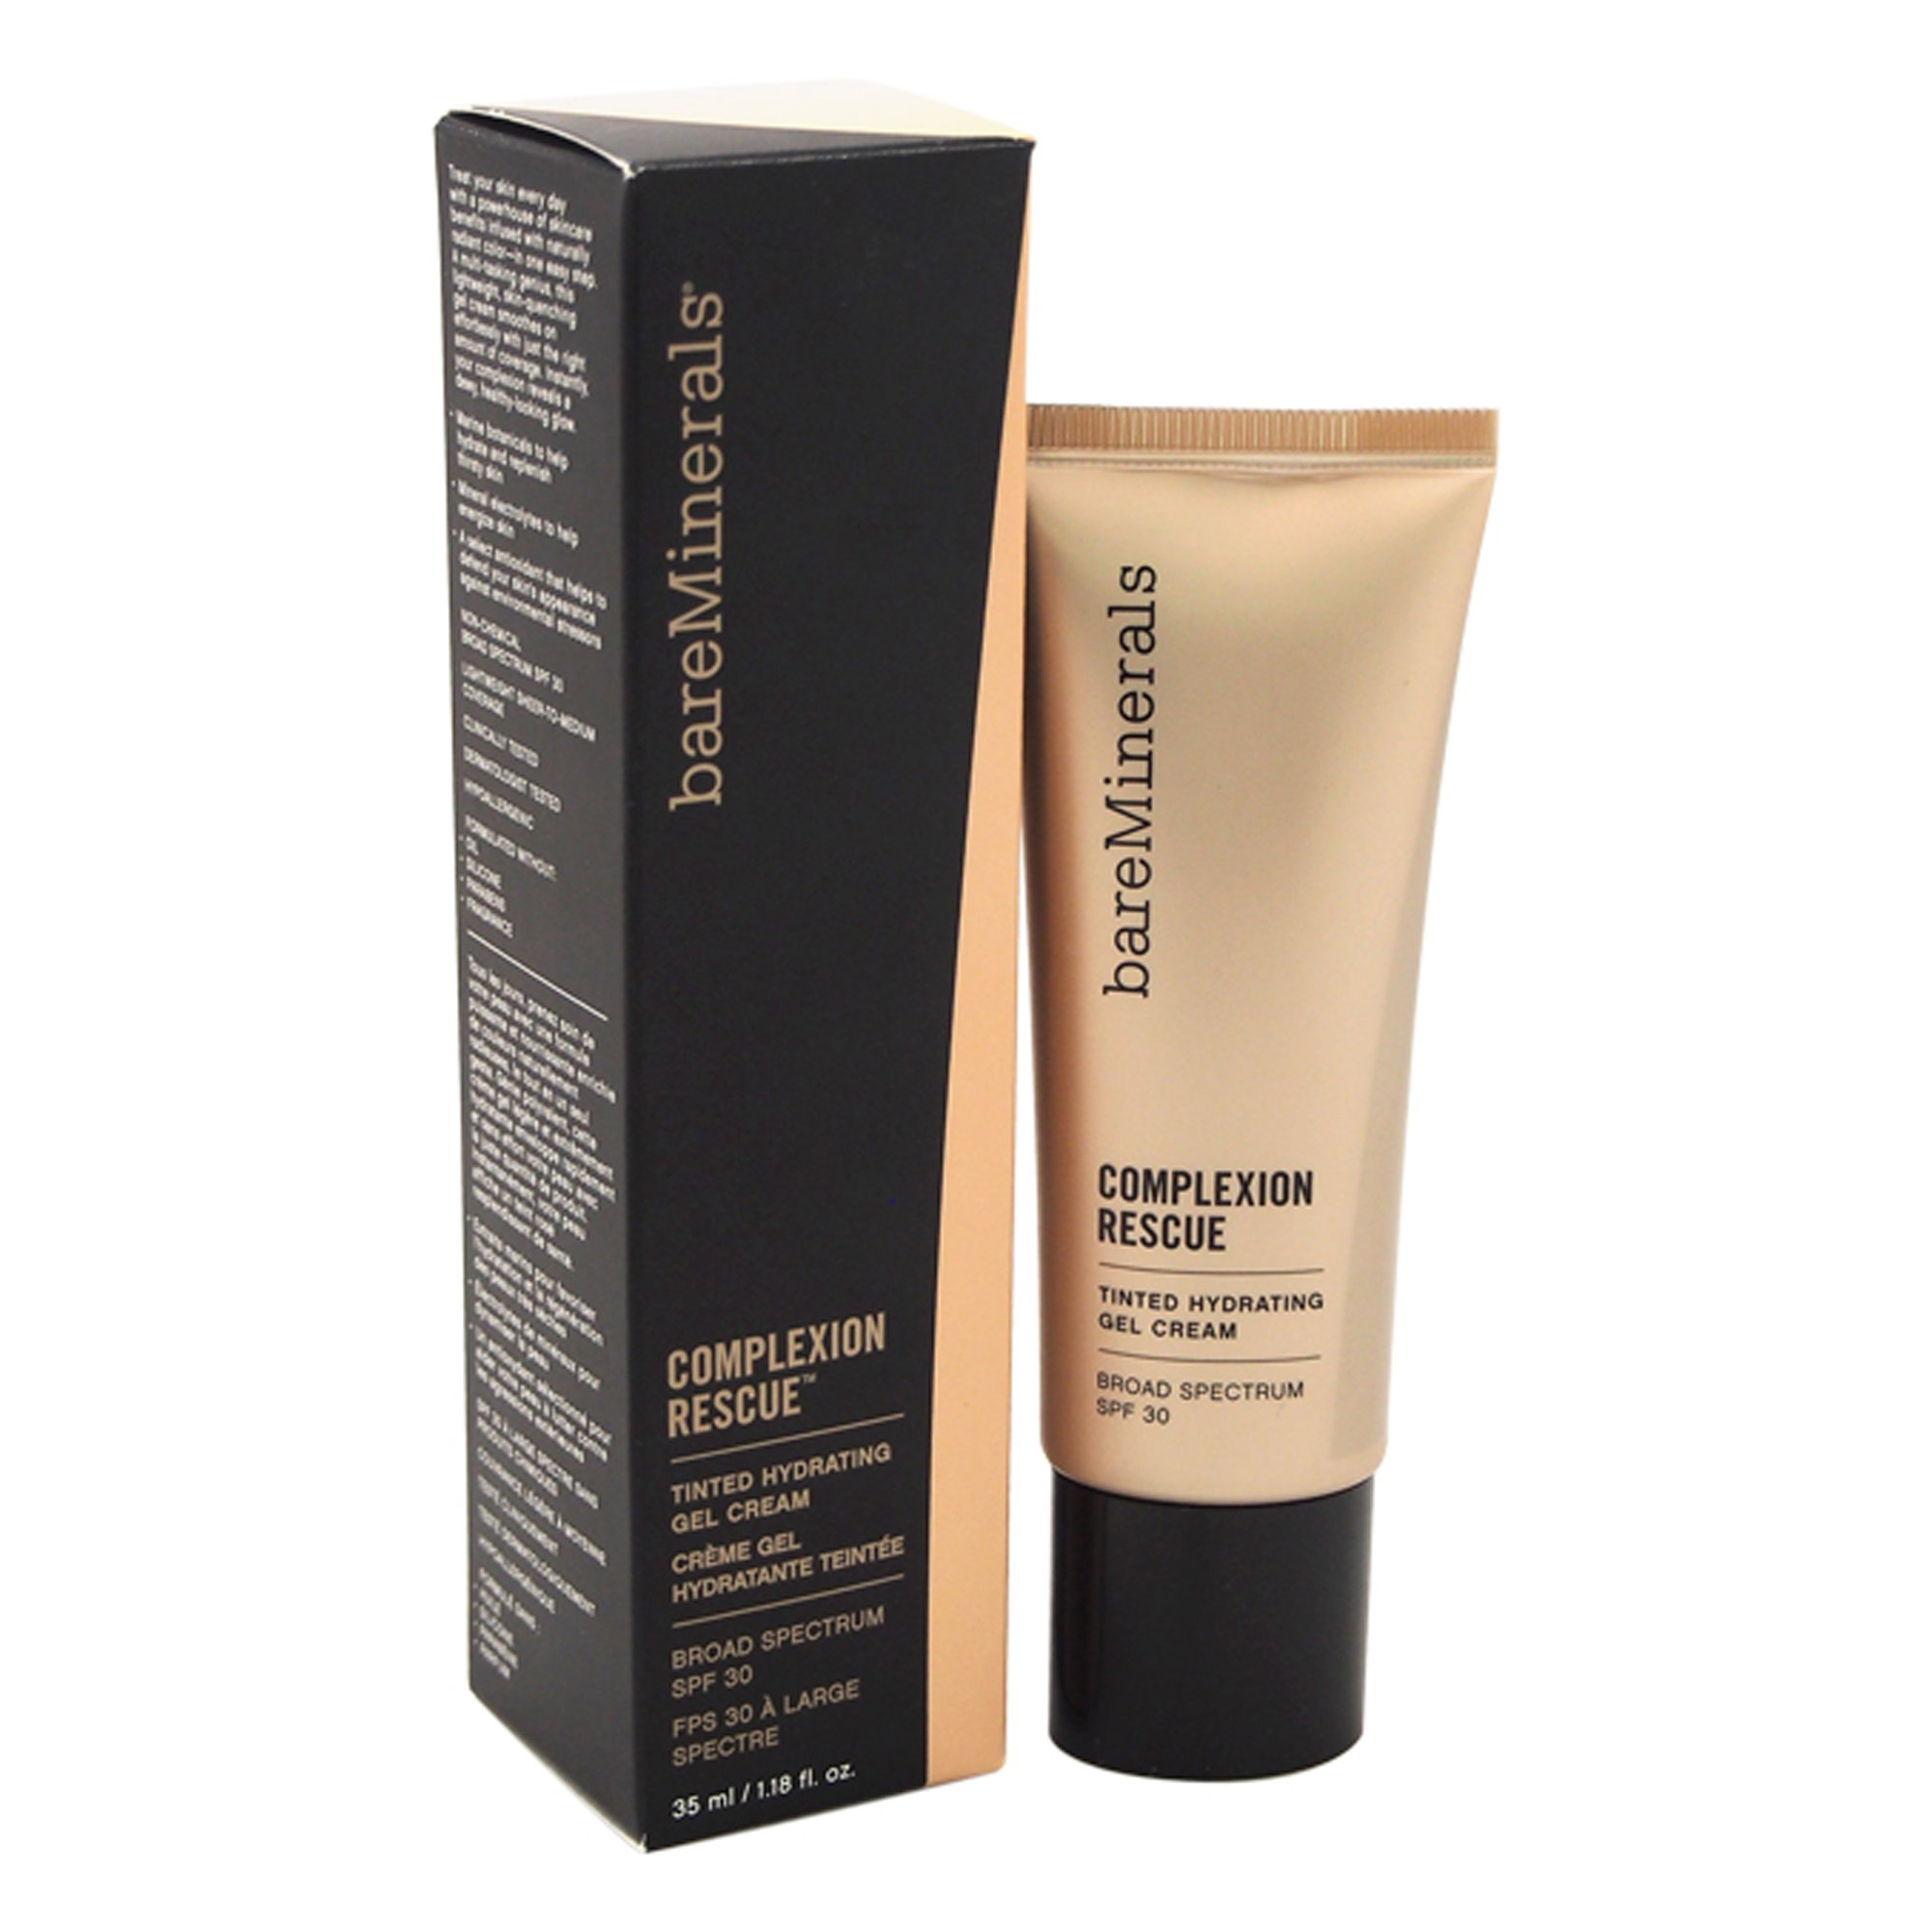 bareMinerals Complexion Rescue Tinted Hydrating Gel Cream SPF 30, Vanilla 02, 1.18 Ounce